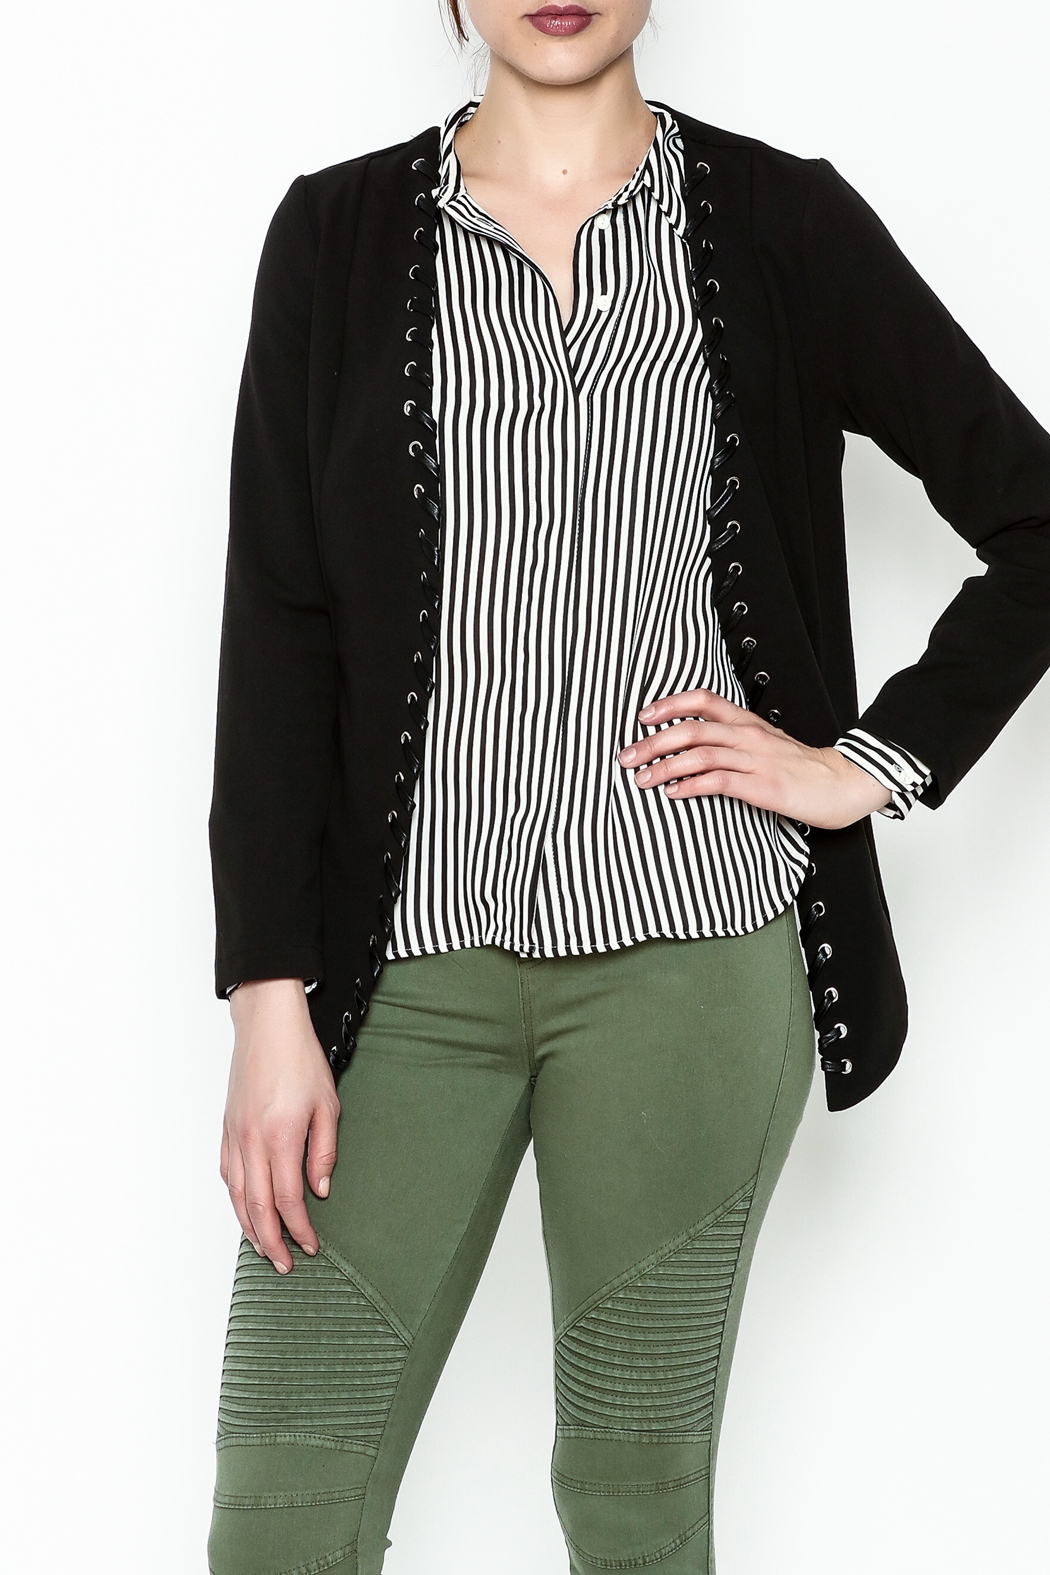 MICHEL Lace Up Blazer - Main Image